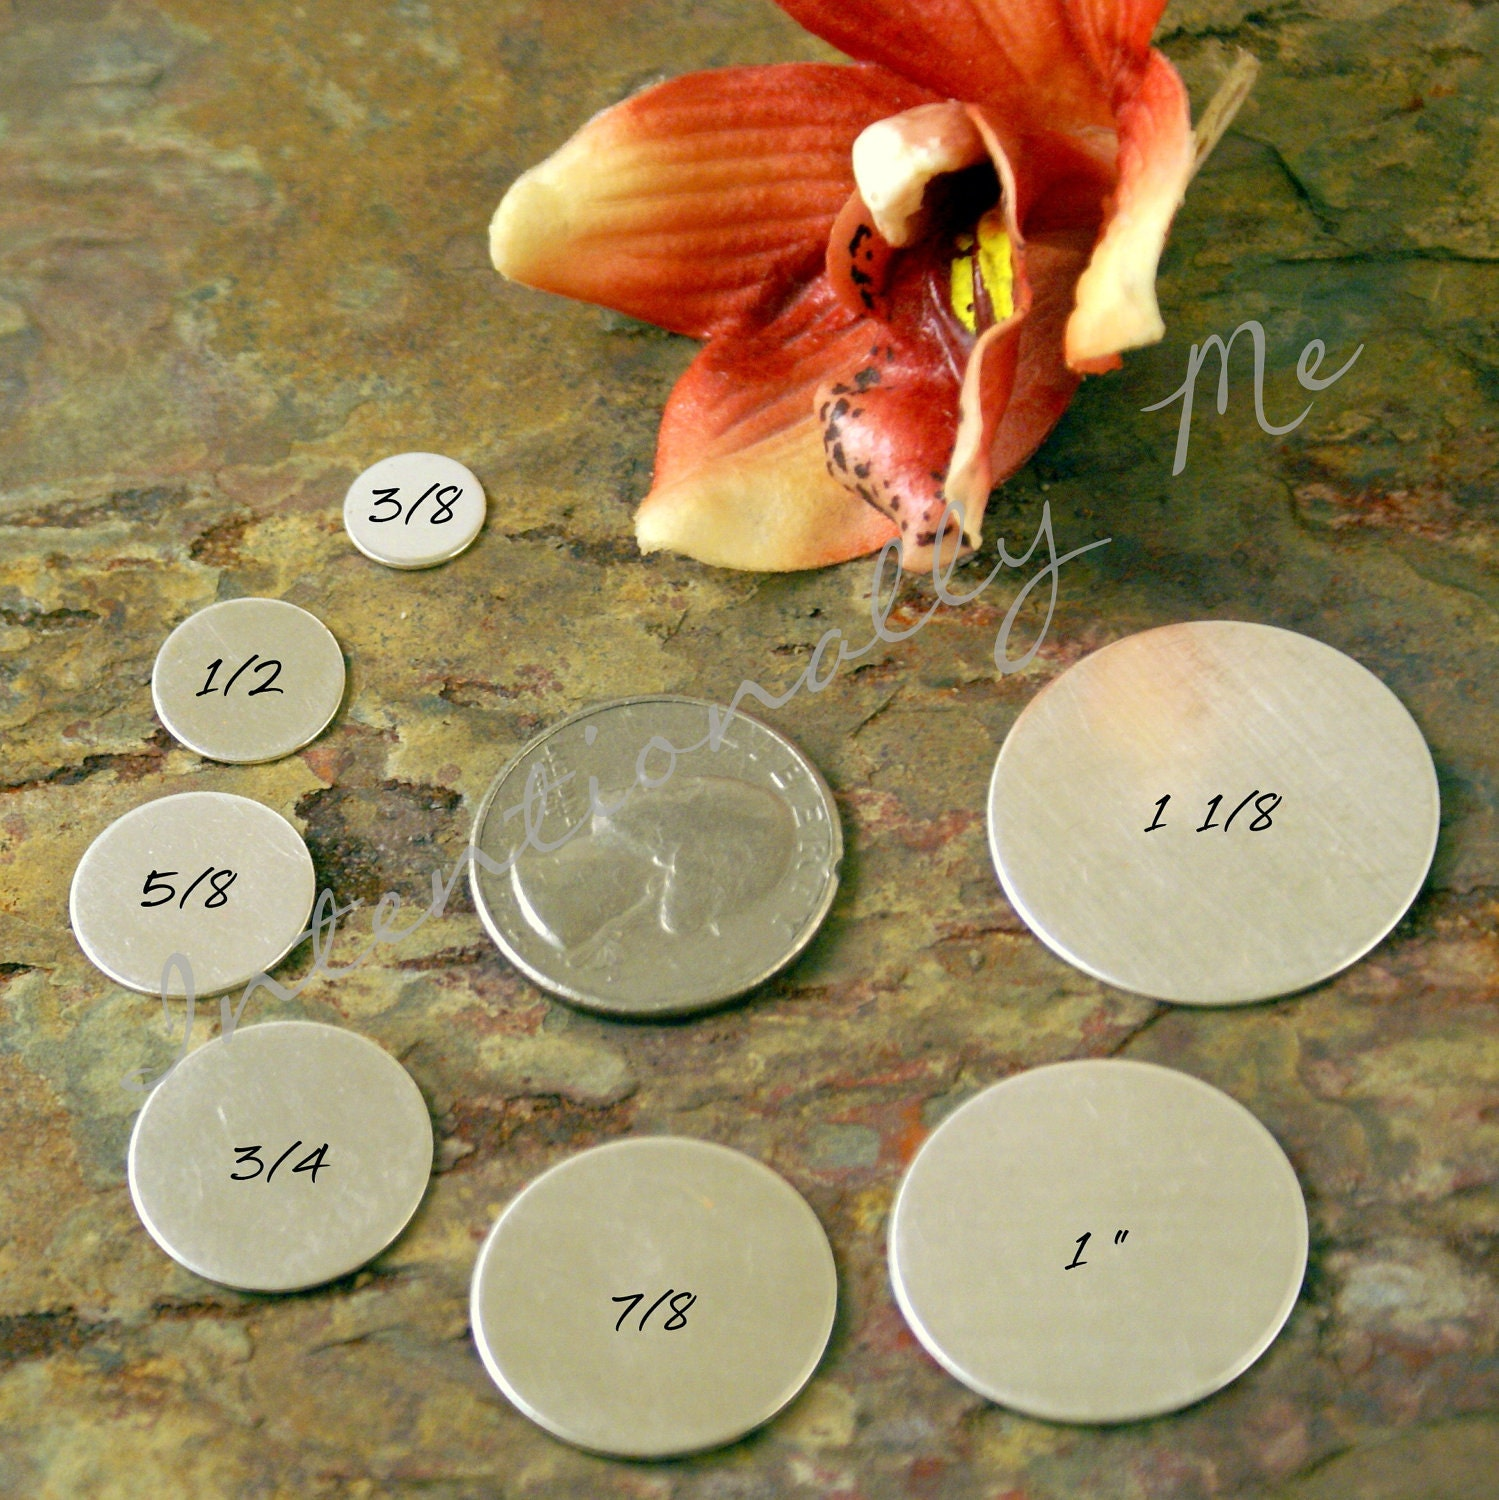 Sending Invoice On Paypal Personalized Hand Stamped Jewelry Custom Mommy By Intentionallyme Returning Faulty Goods Without Receipt Pdf with Mdx Toll By Plate Invoice I Will Stamp Exactly How I Get The Instructions On Your Order Please  Specify If You Want All Lowercase  All Uppercase Or Capitalized Lowercase Tnt Commercial Invoice Pdf